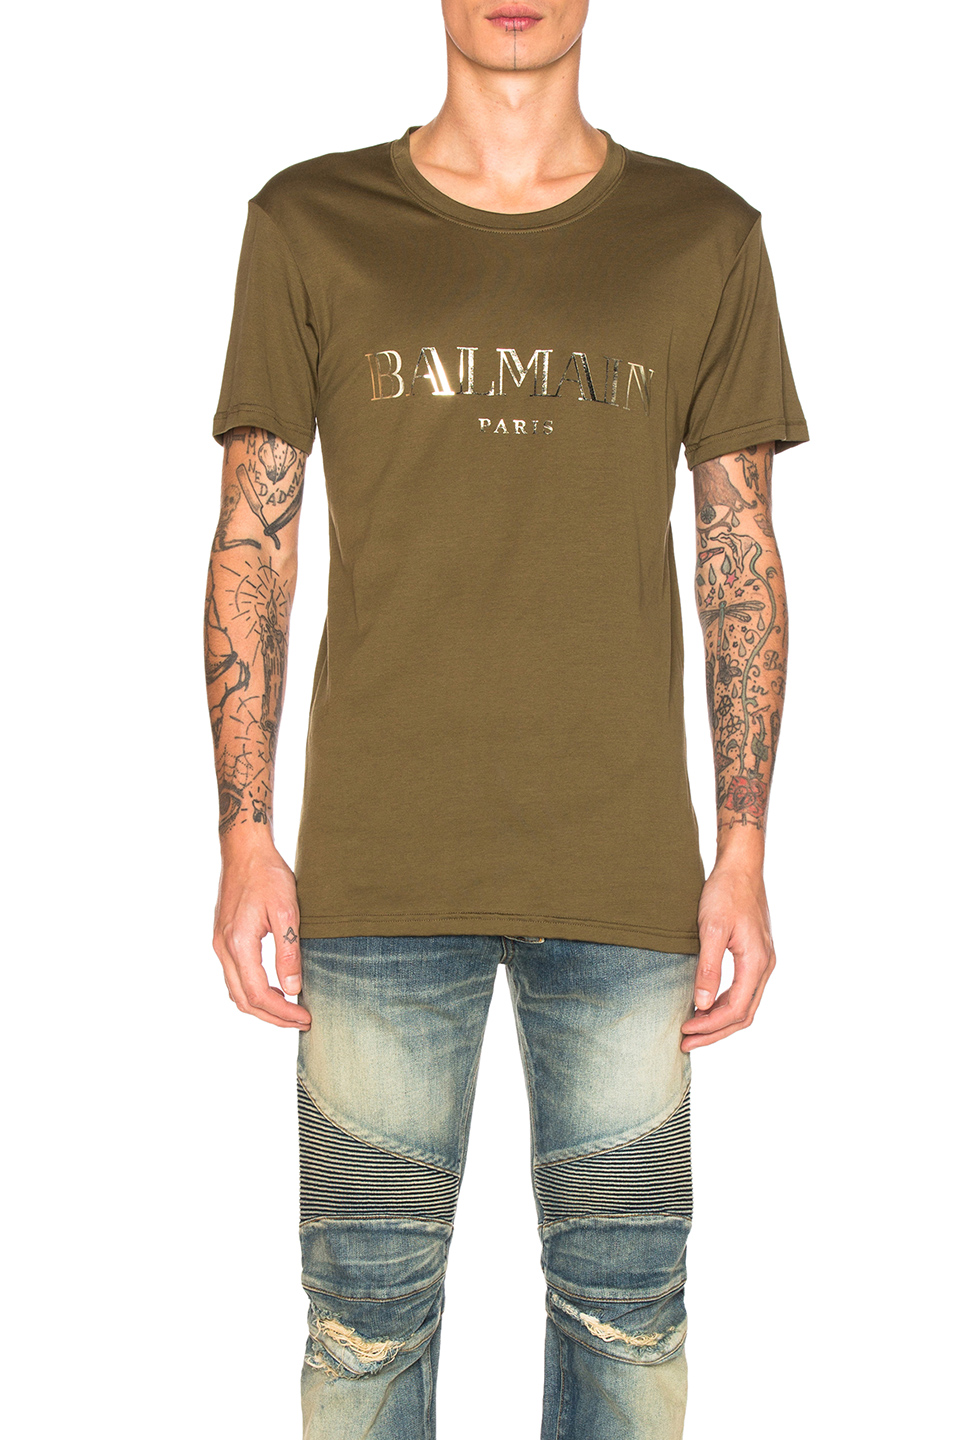 BALMAIN Logo Tee in Green